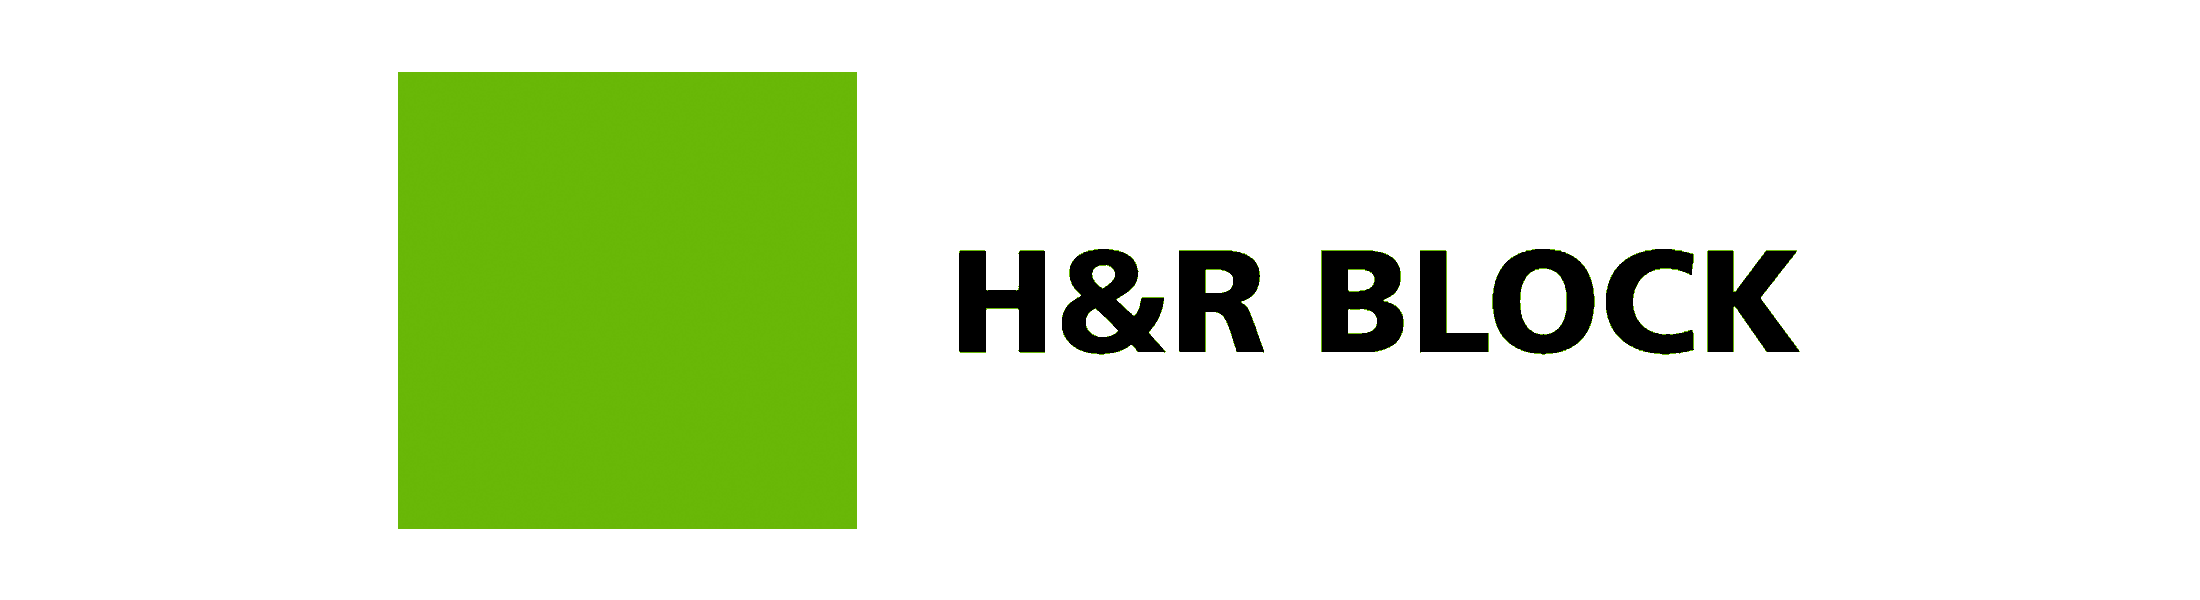 H_and_R_Block_logo.svg